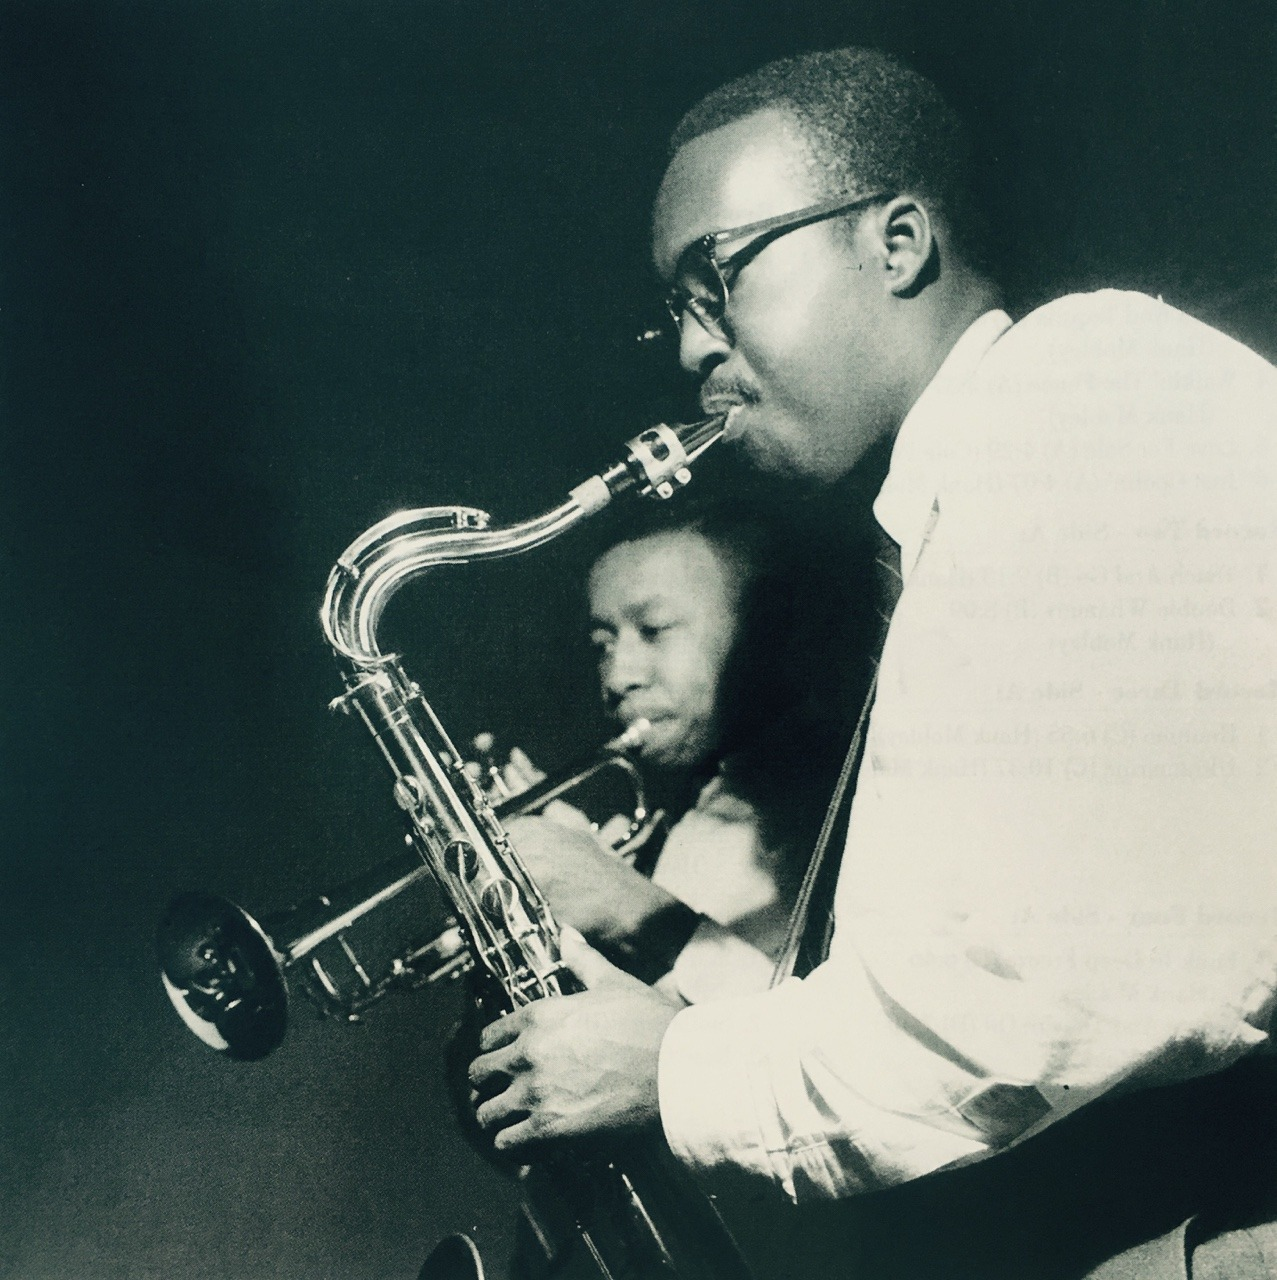 Trumpeter Lee Morgan and saxophonist Hank Mobley recording for the album PECKIN' TIME in 1958.  (Photo by Francis Wolff)